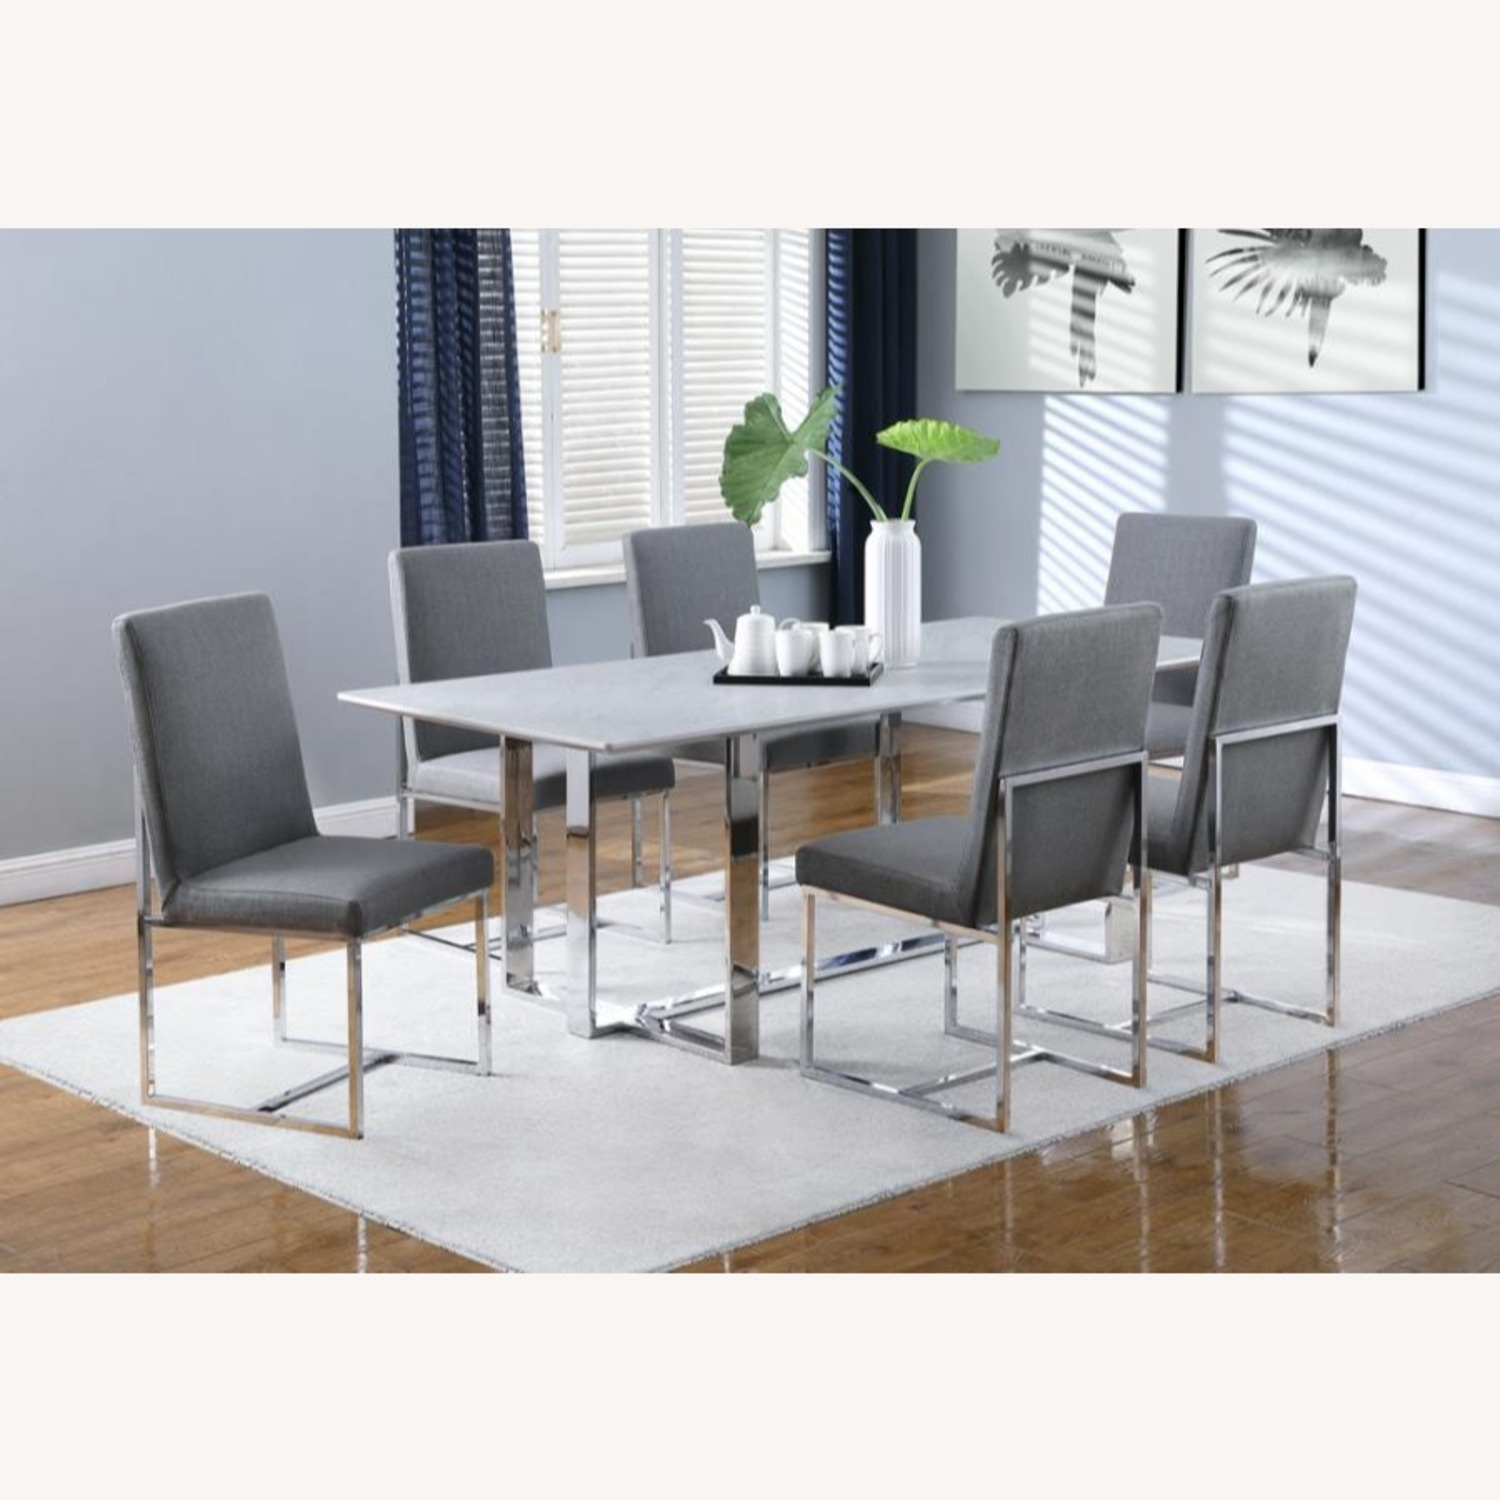 Dining Table In White Thick Tempered Glass Finish - image-5